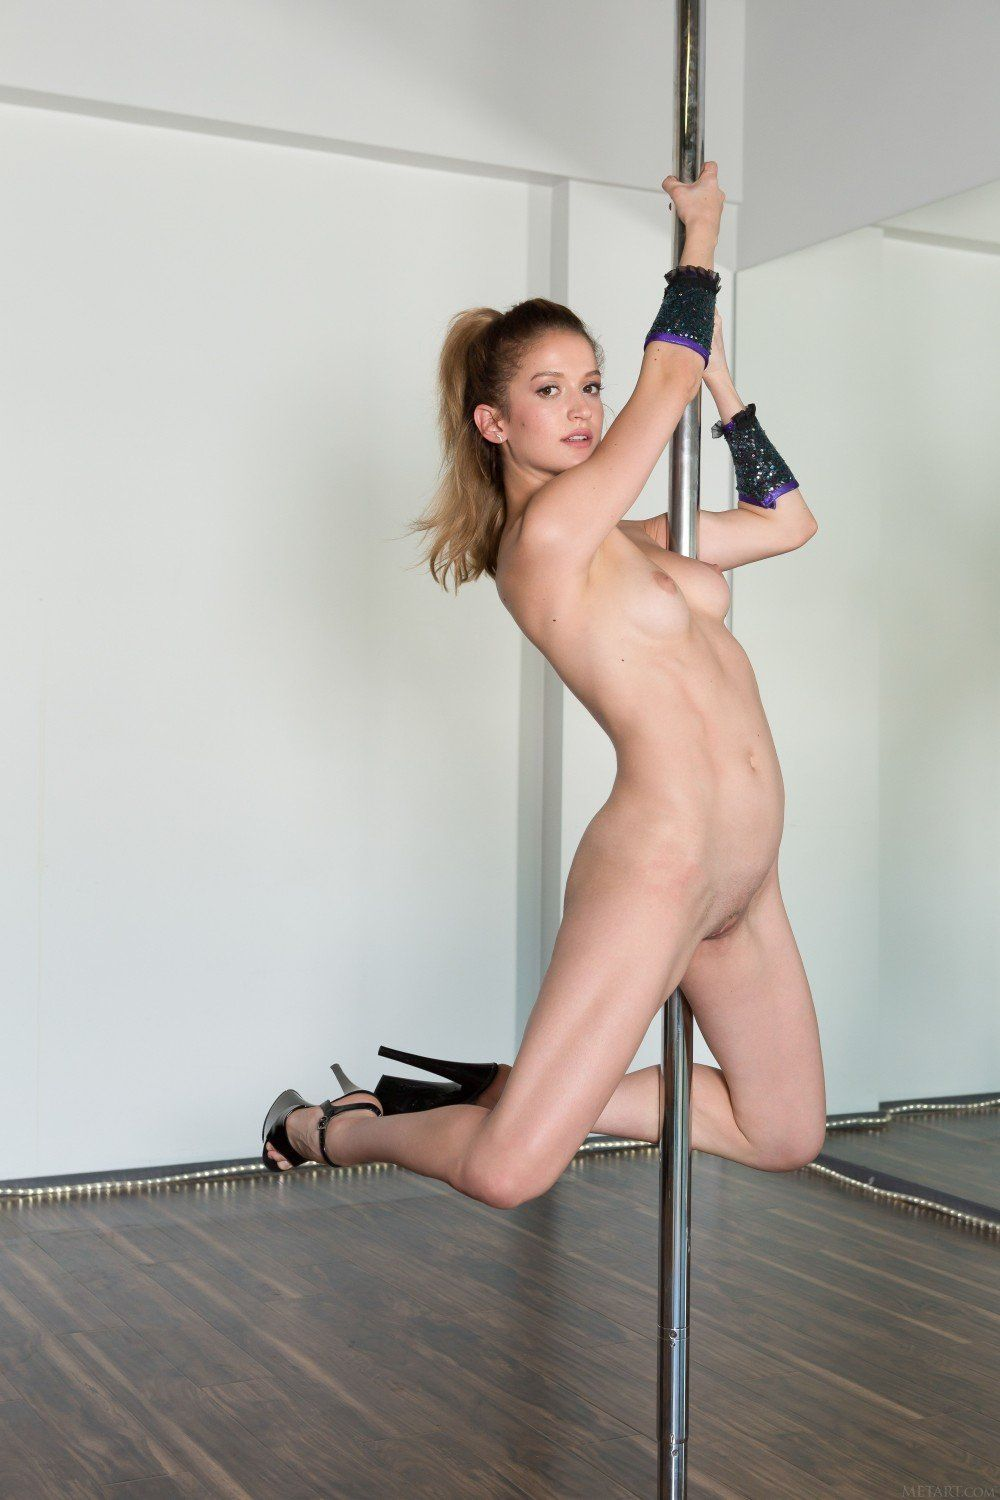 Sex naked pole dancing right